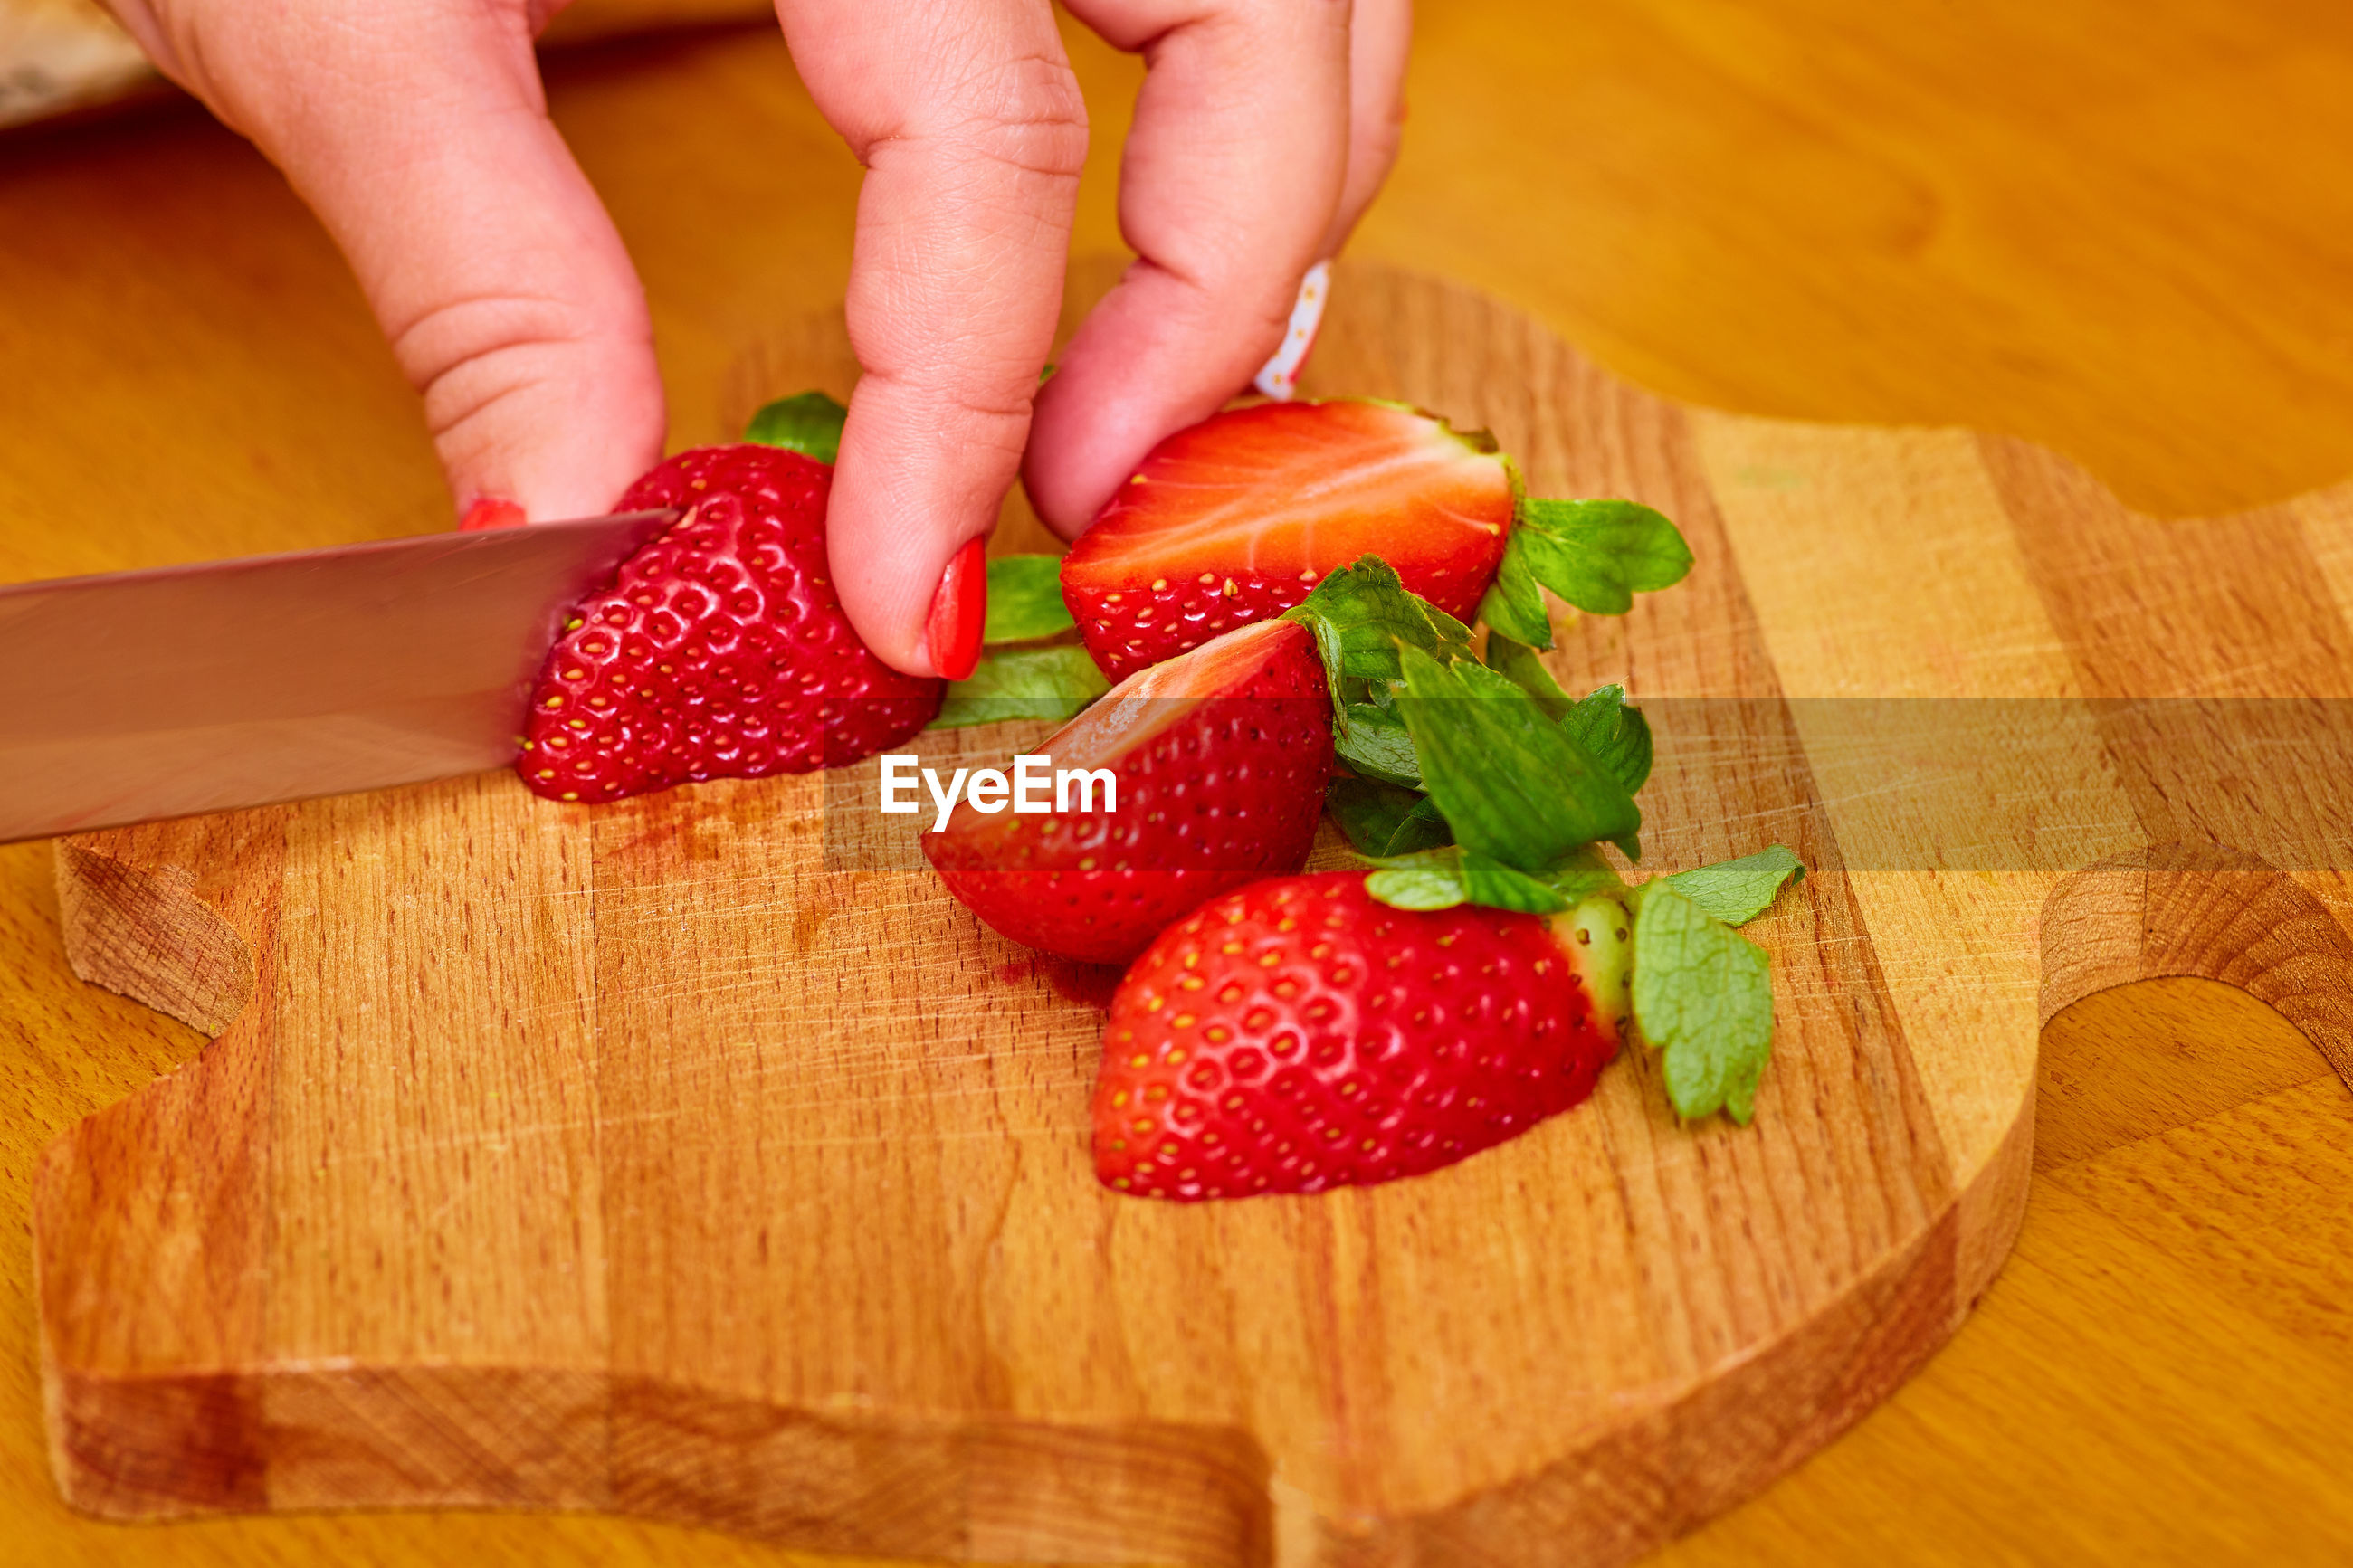 HIGH ANGLE VIEW OF WOMAN HOLDING STRAWBERRIES IN CUTTING BOARD